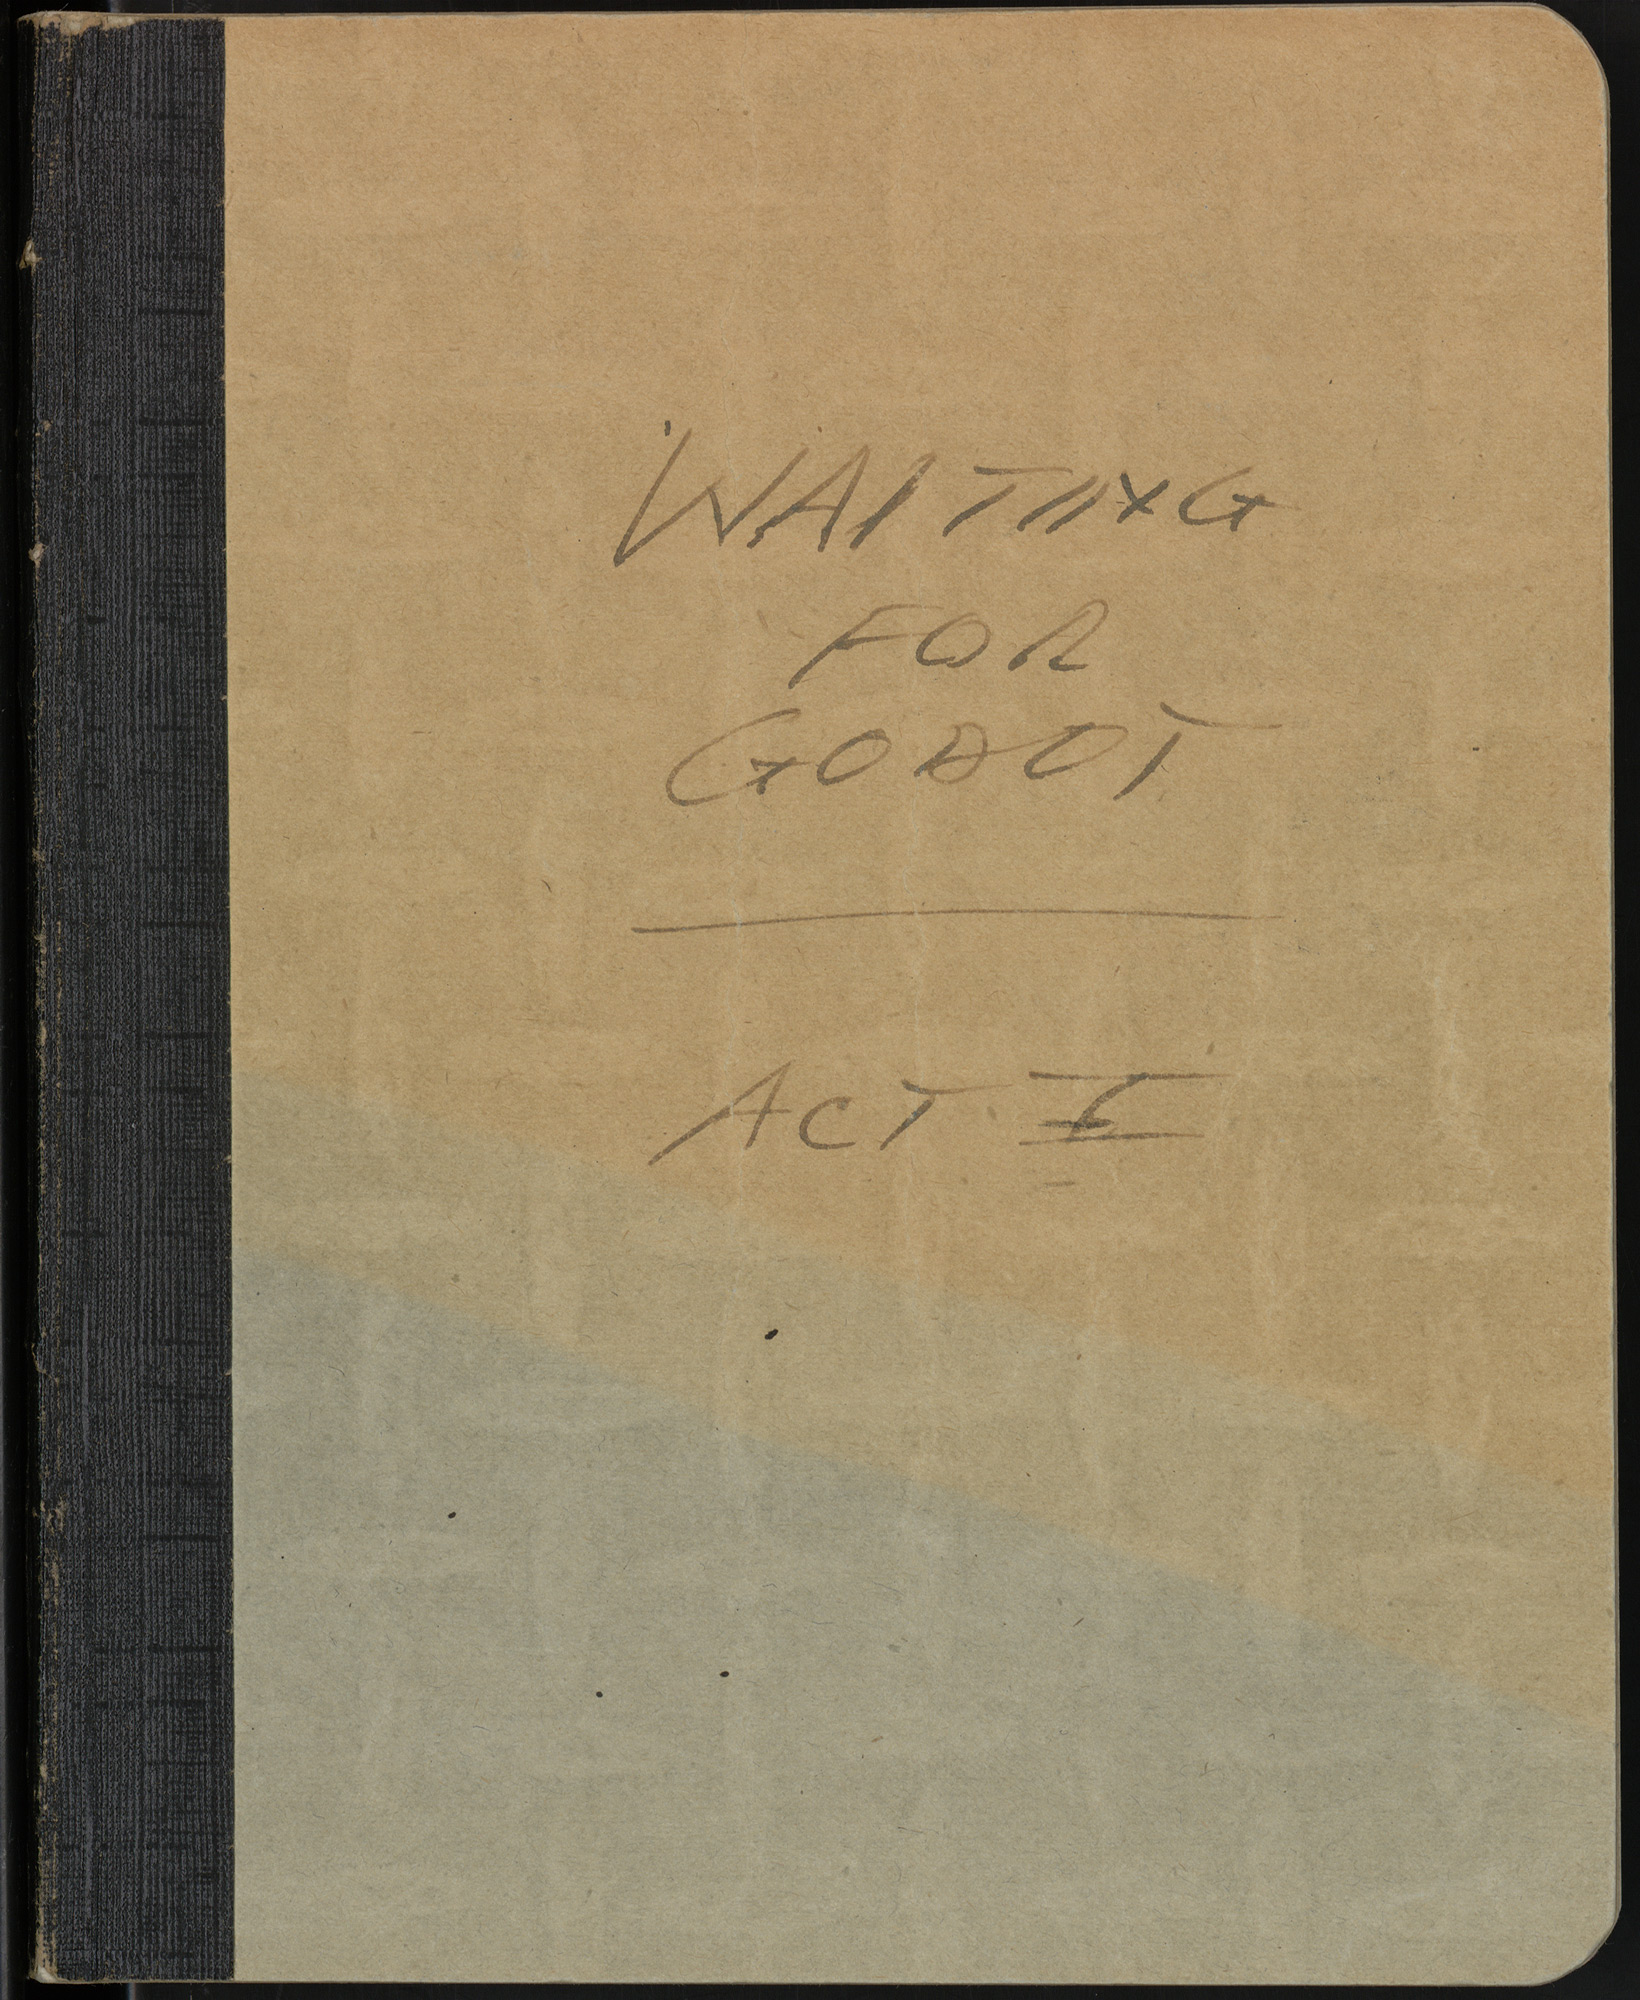 Notebook drafts of Waiting for Godot by Samuel Beckett